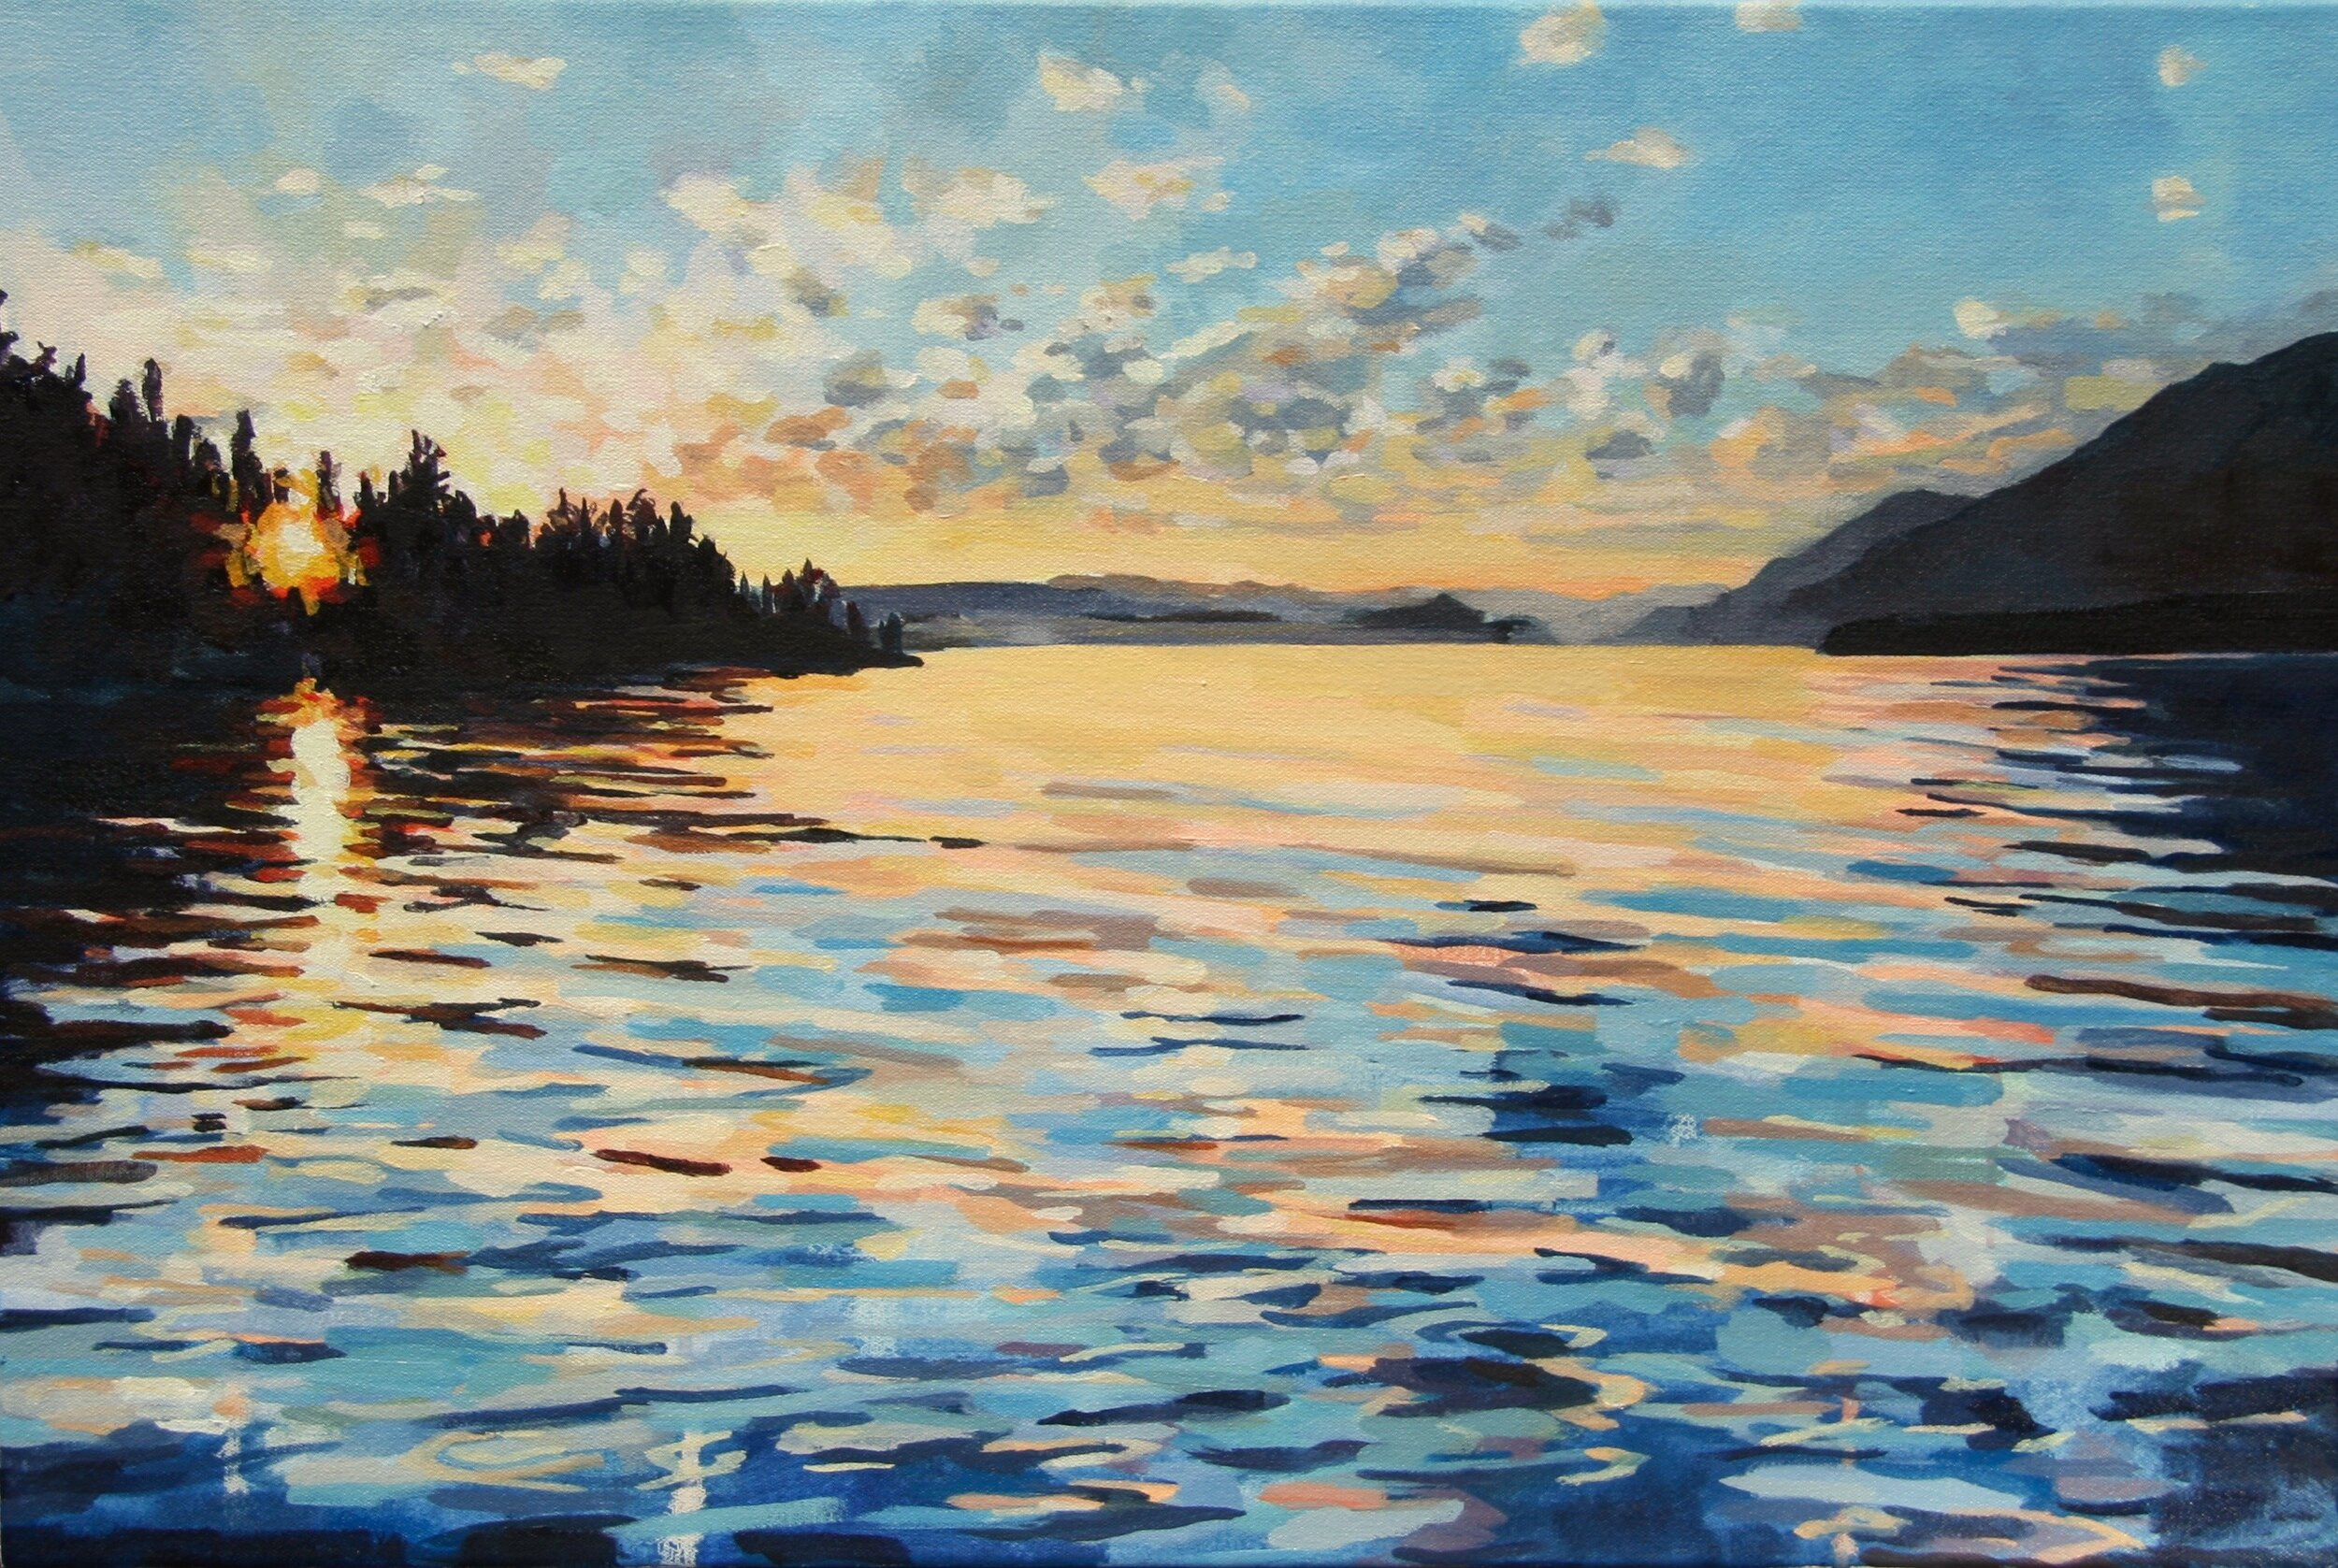 """'Lake Pend Oreille'  2015  30"""" x 20""""  water soluble oil on canvas  sold"""